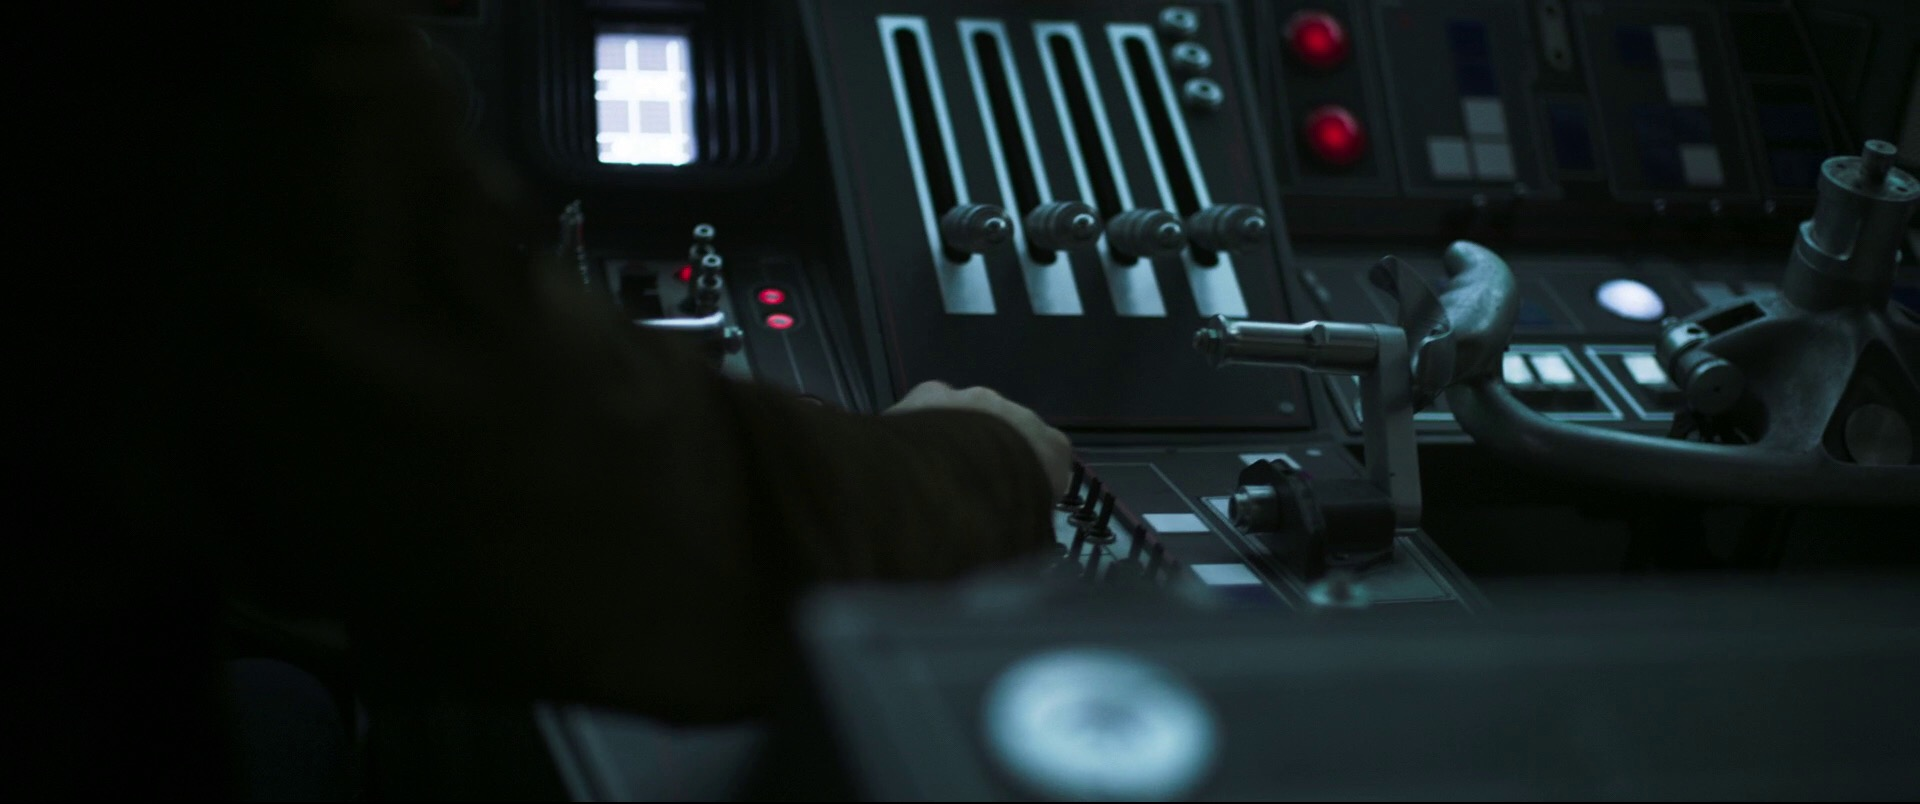 Solo-A-Star-Wars-Story-Trailer-Analysis-Falcon-Controls-Future-of-the-Force